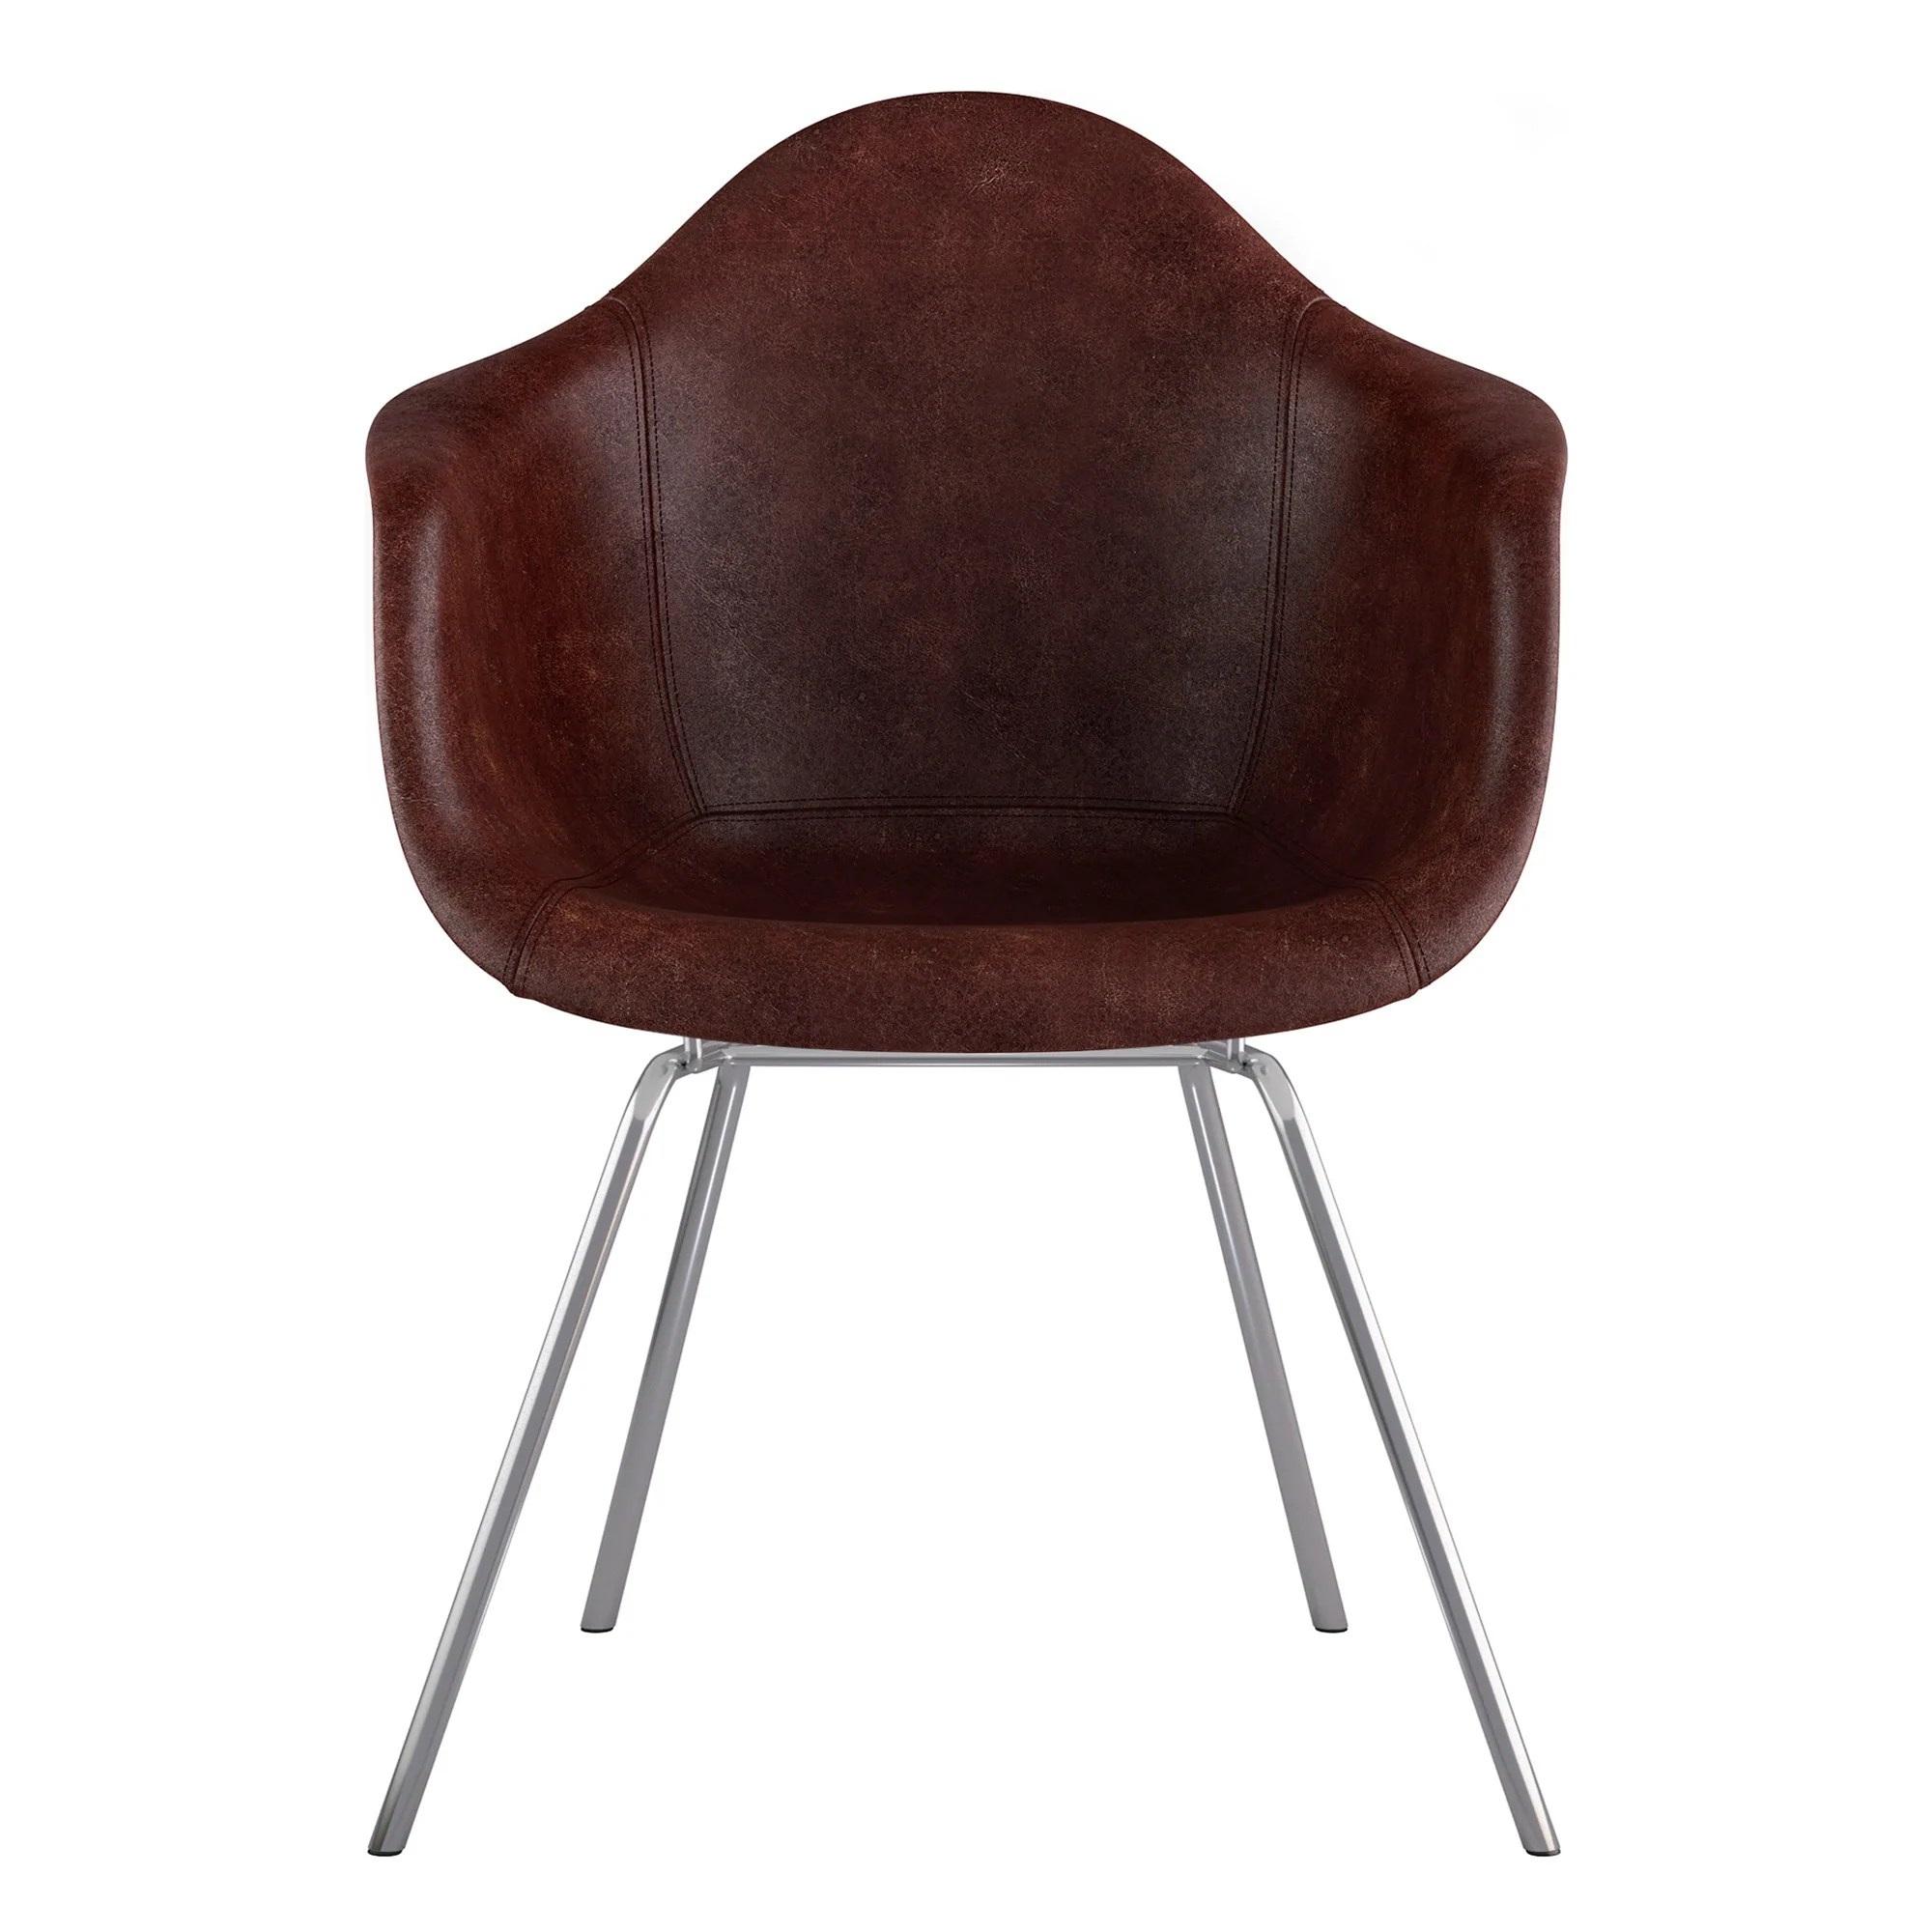 eames leather chair dining ergonomic and desk reproduction lounge replica emfurn dax style 4 leg armhair chairs free shipping